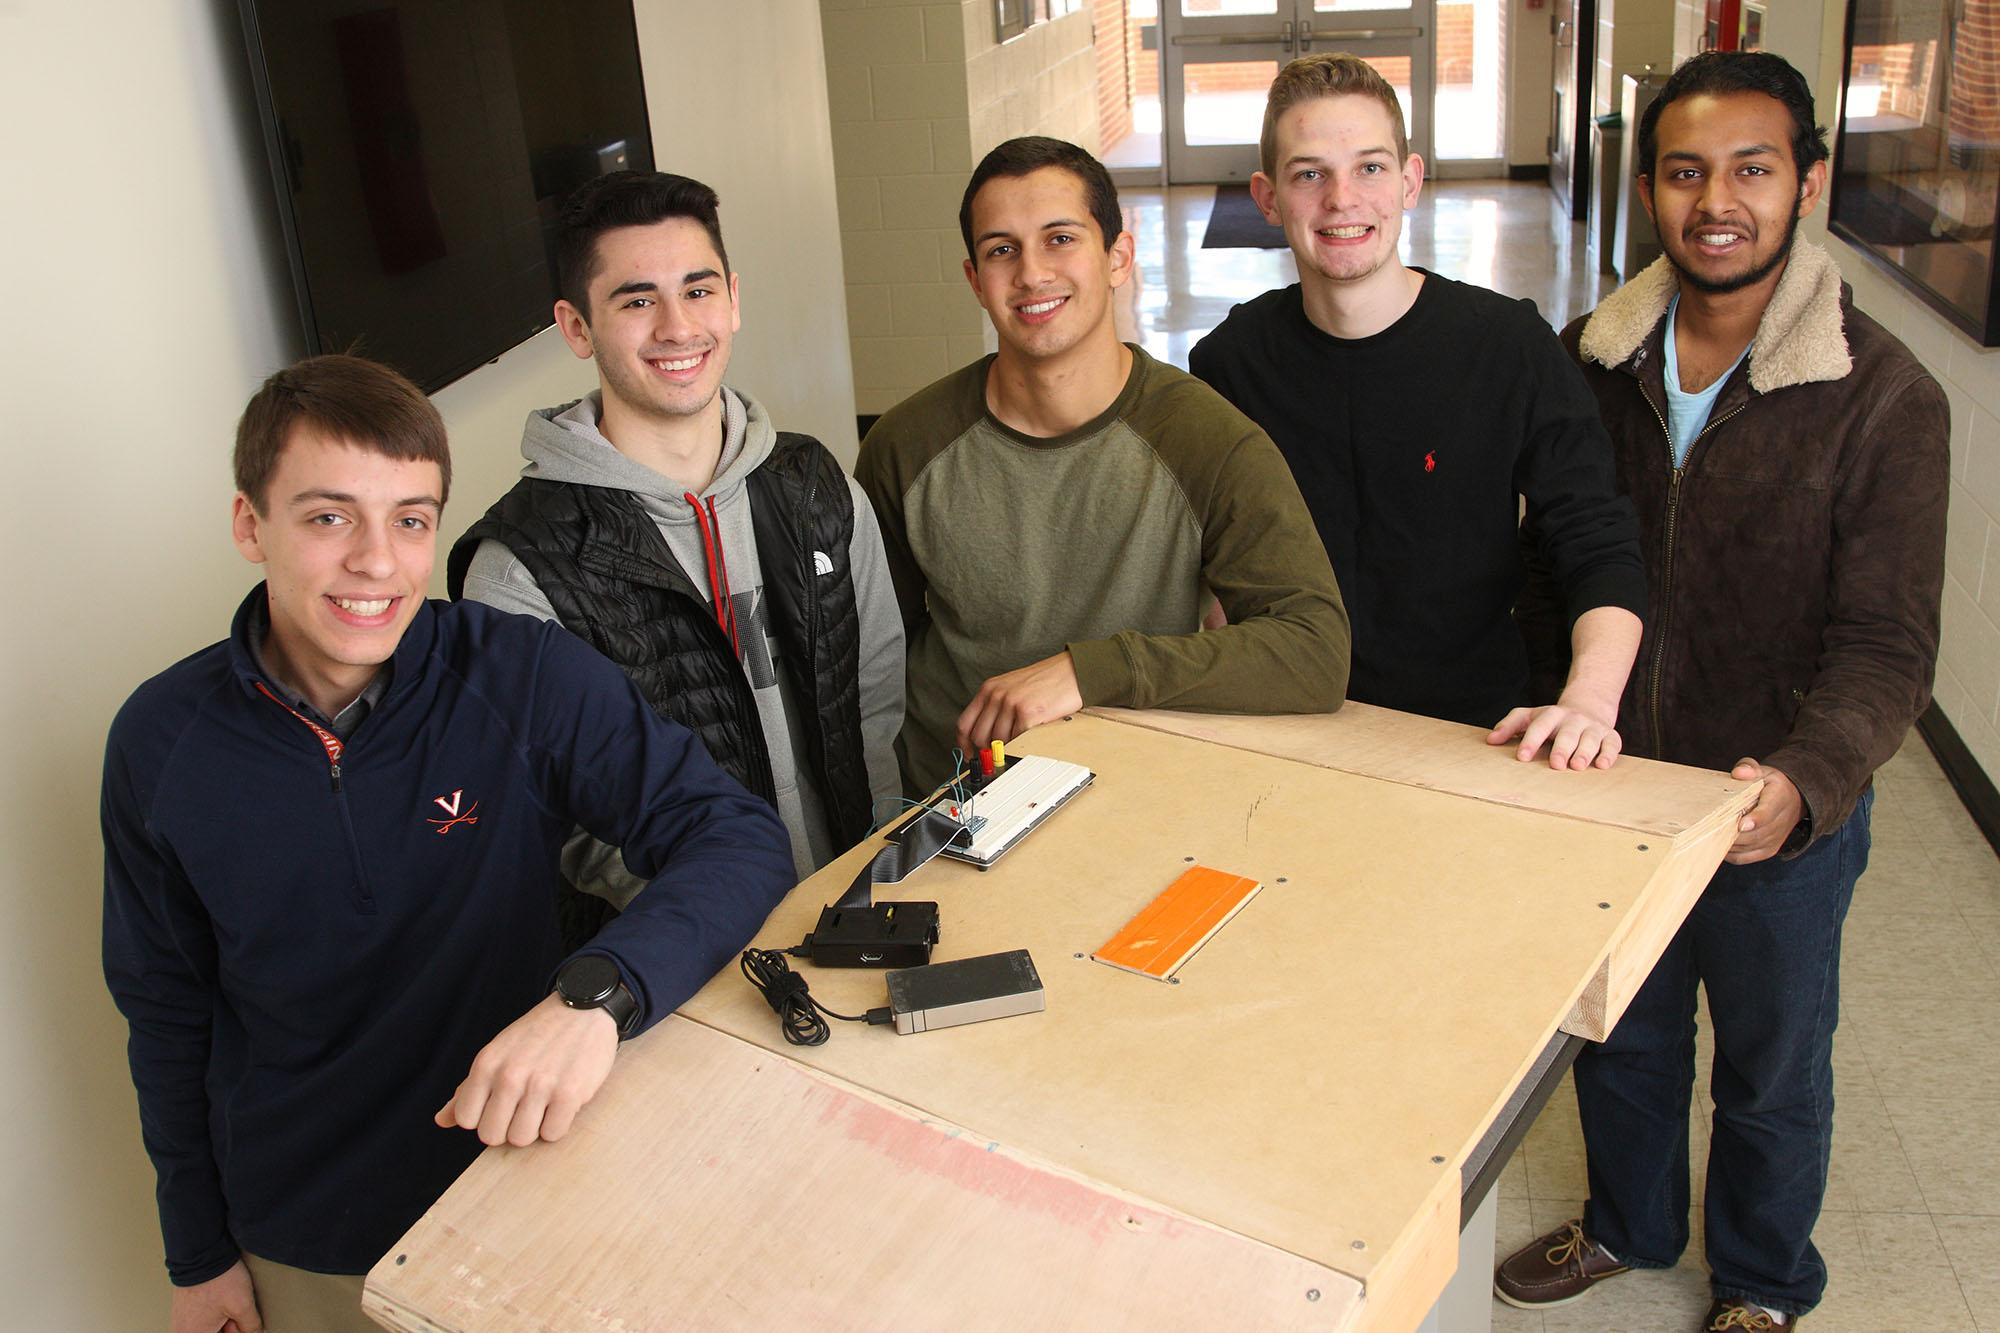 First-year engineering students, from left, Daniel Voce, Andrew Gerin, Nick Field, John Ruppert and Vamshi Garikapati brainstormed a floor-installed pressure plate which, when triggered by a wheelchair, could open heavy doors.